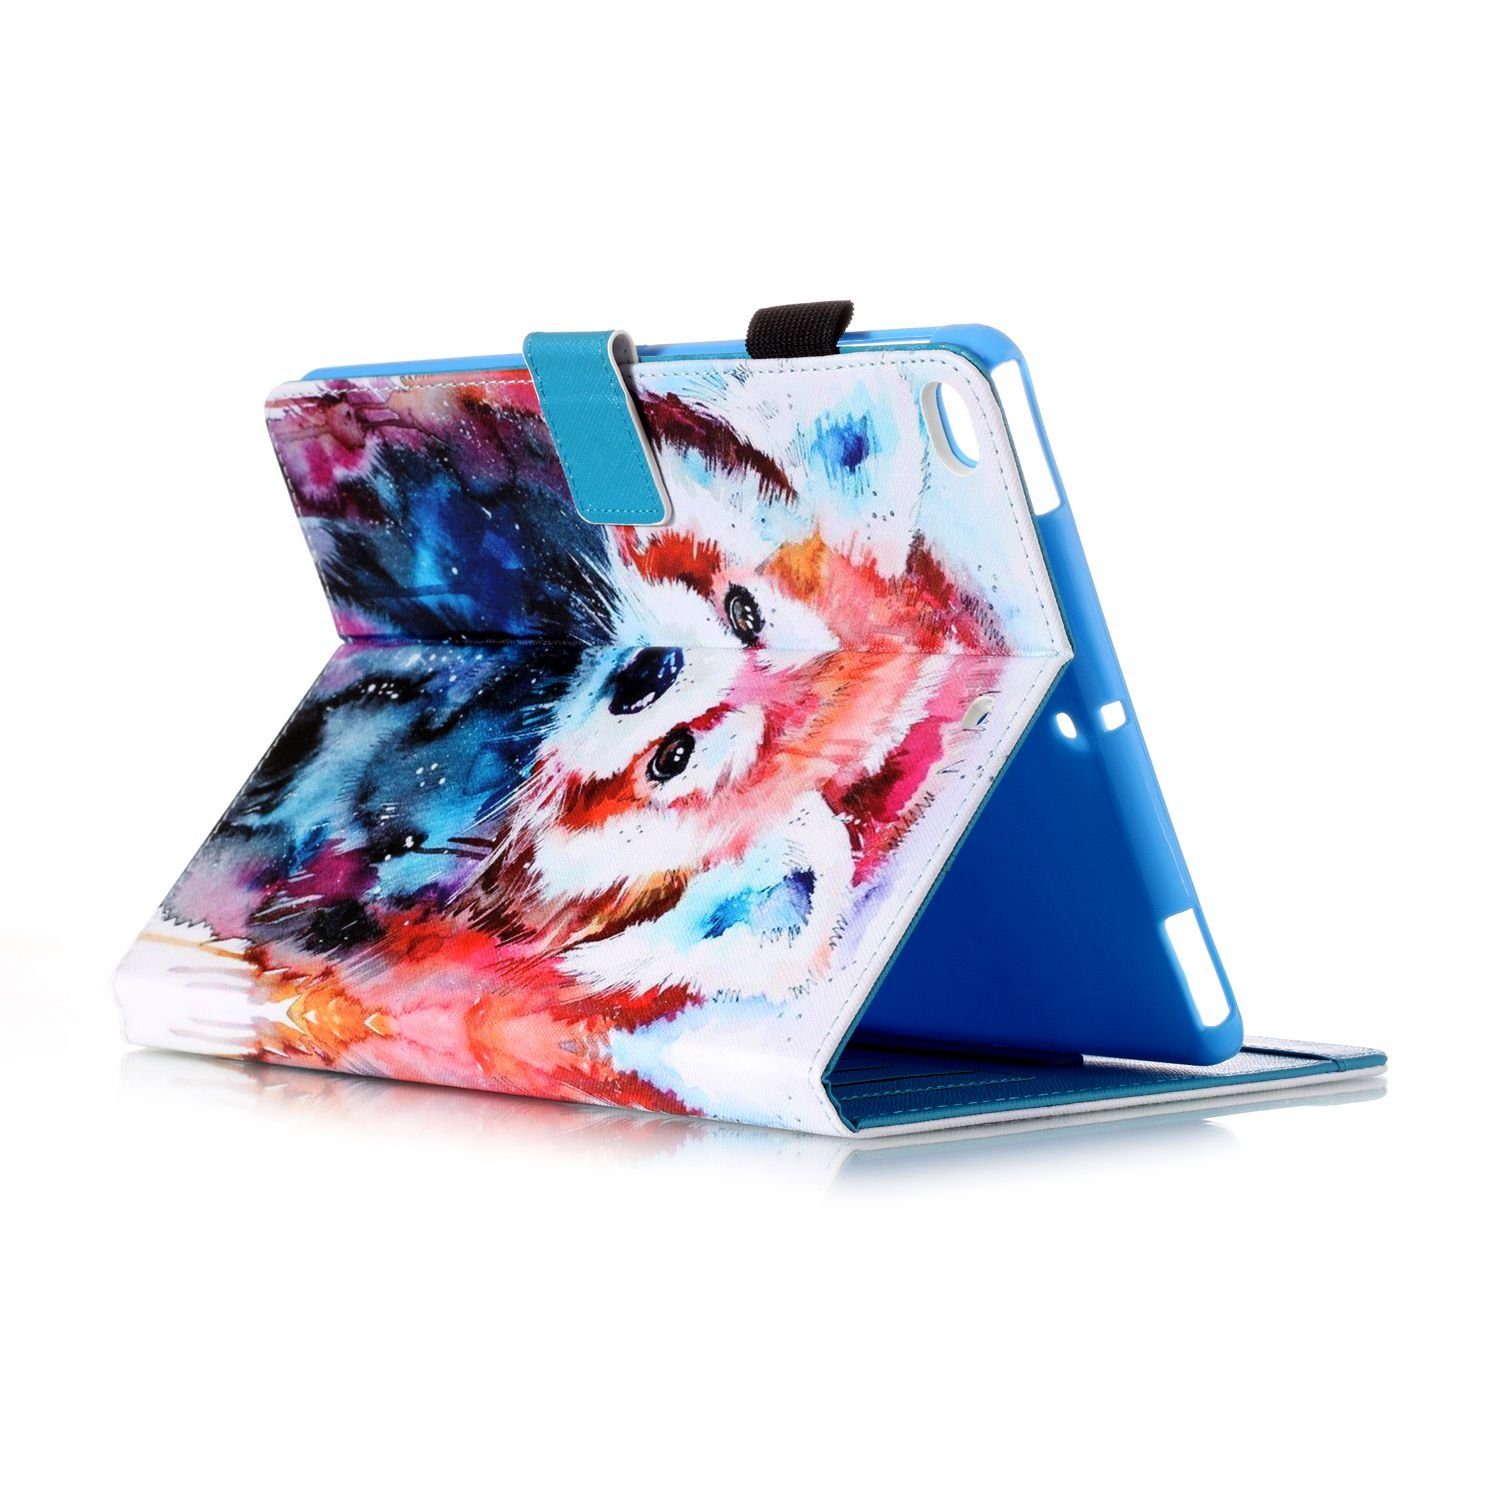 New iPad Case Smart Leather Case - UNOTECH Card Slot Protective Case with Pen Holder Wake/Sleep Function for New iPad 9.7 Inch 2017,iPad Air 1 2, Leopard Cat by UNOTECH (Image #4)